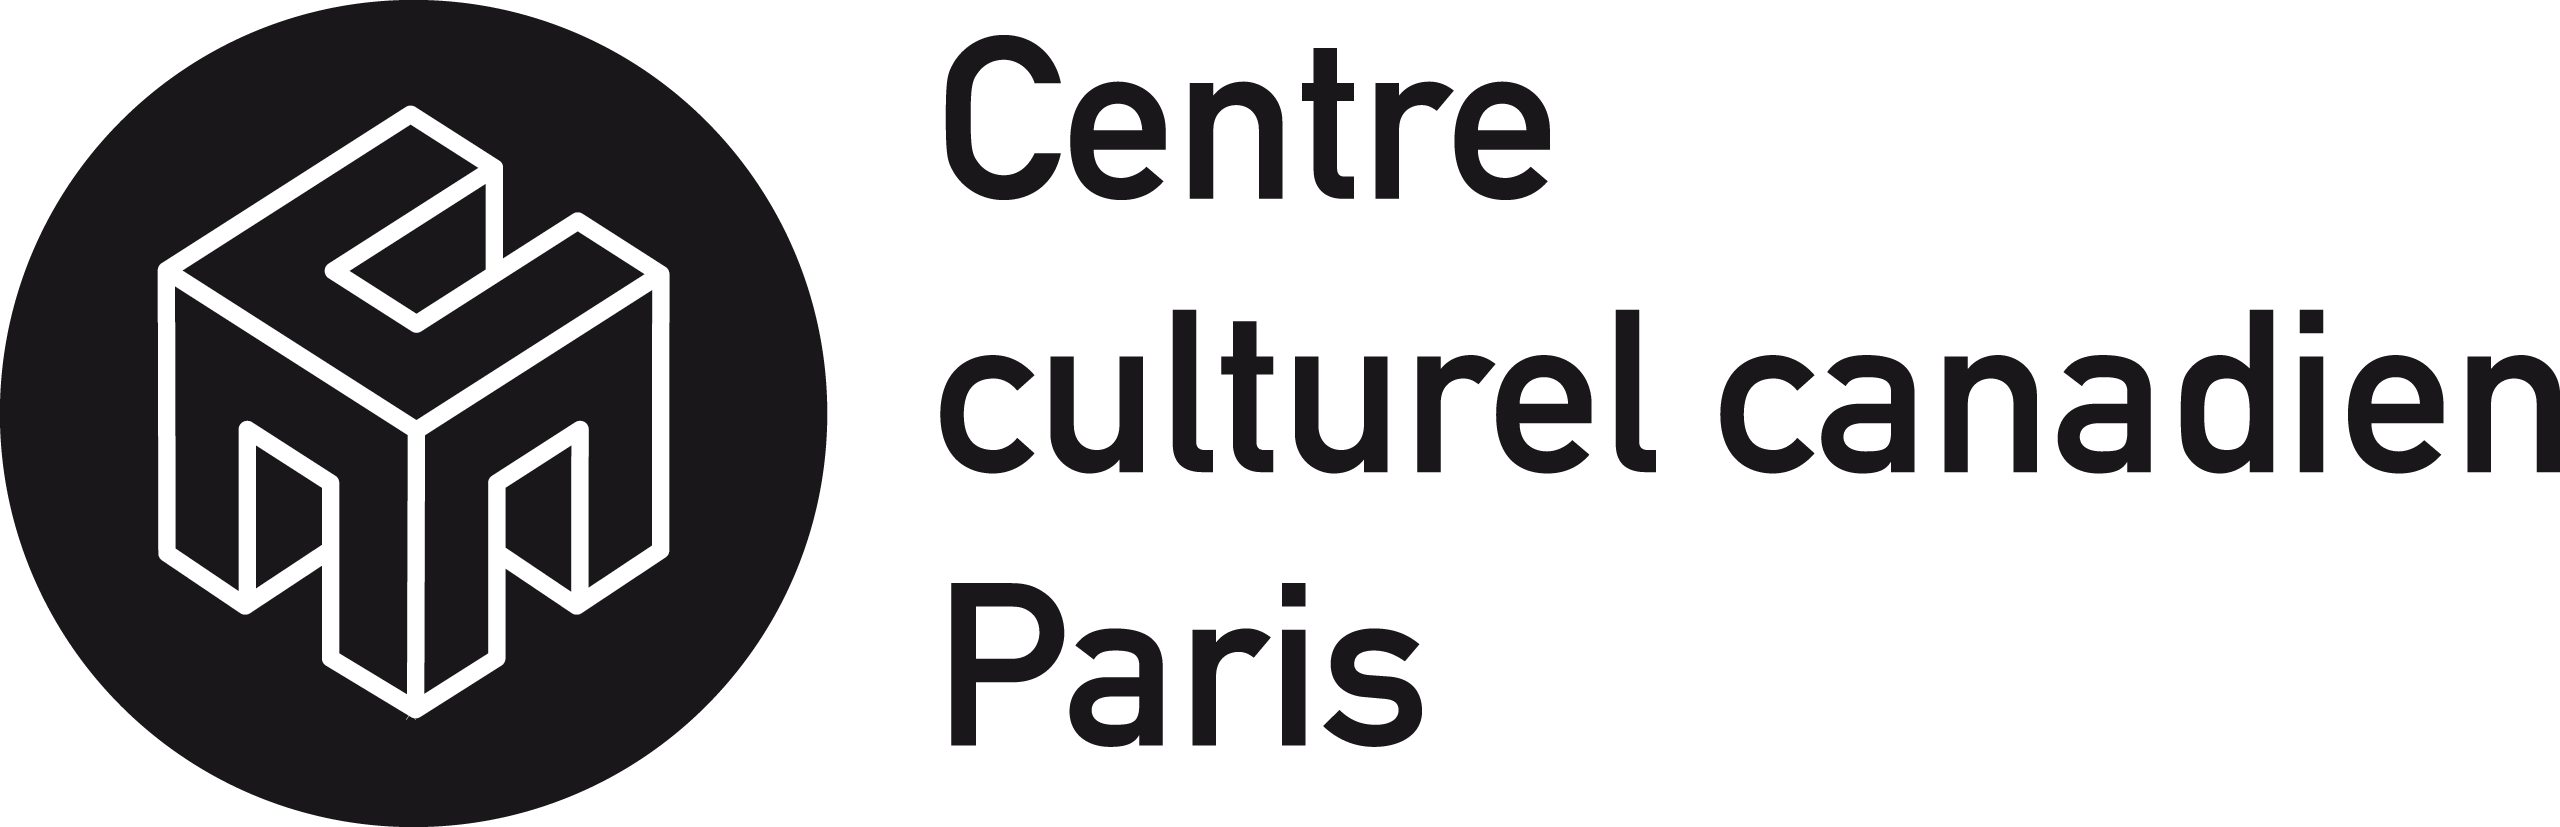 http://www.canada-culture.org/accueil_home-fr.html